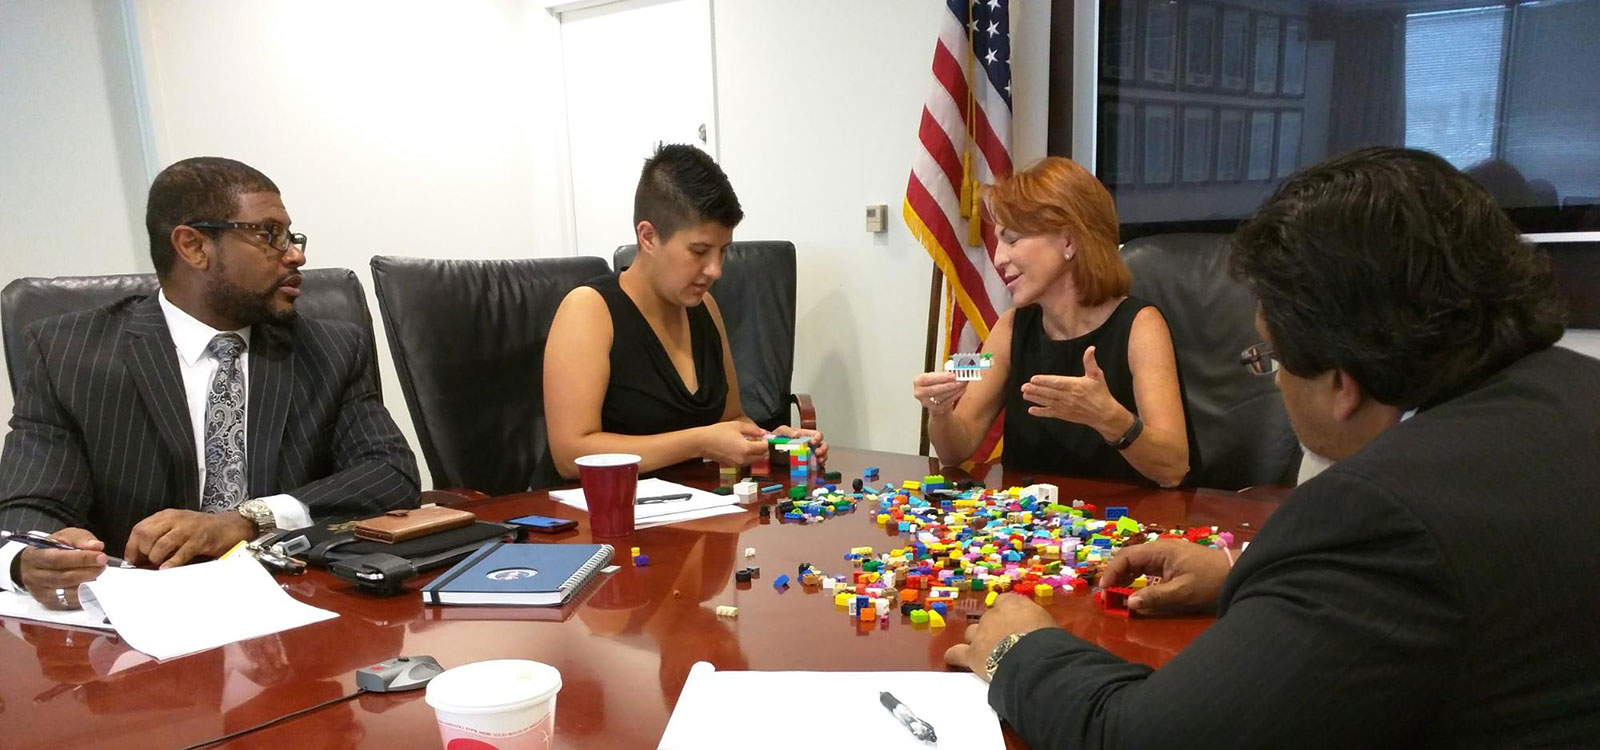 SBA executives prepare to build with Legos.